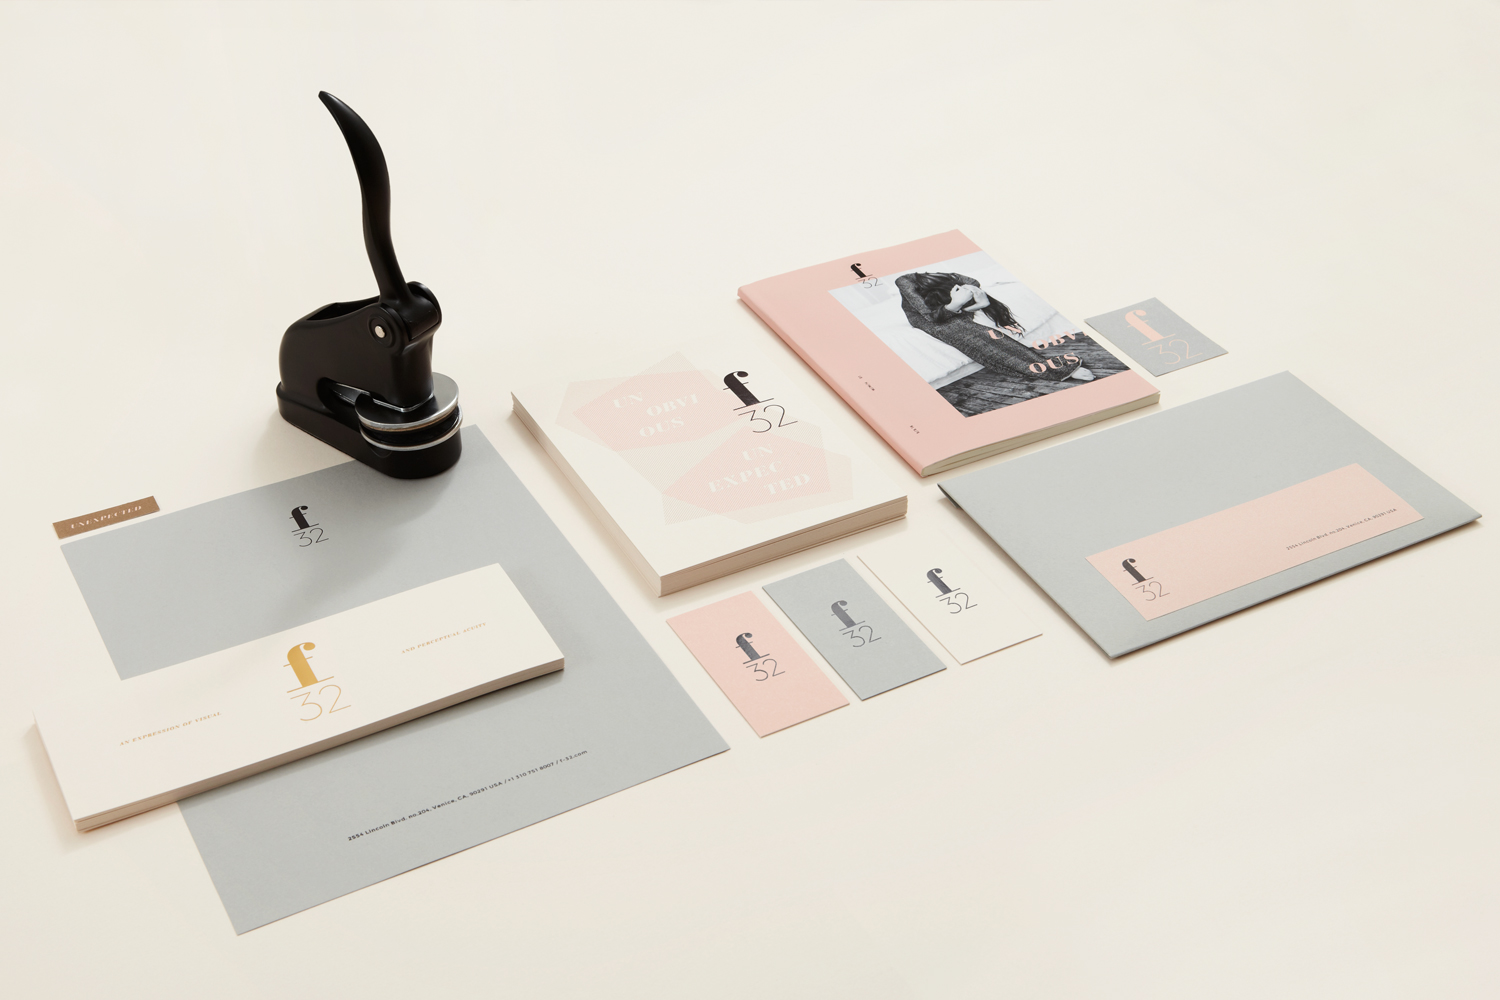 Brand identity by Blok for LA based trend-watching company f32